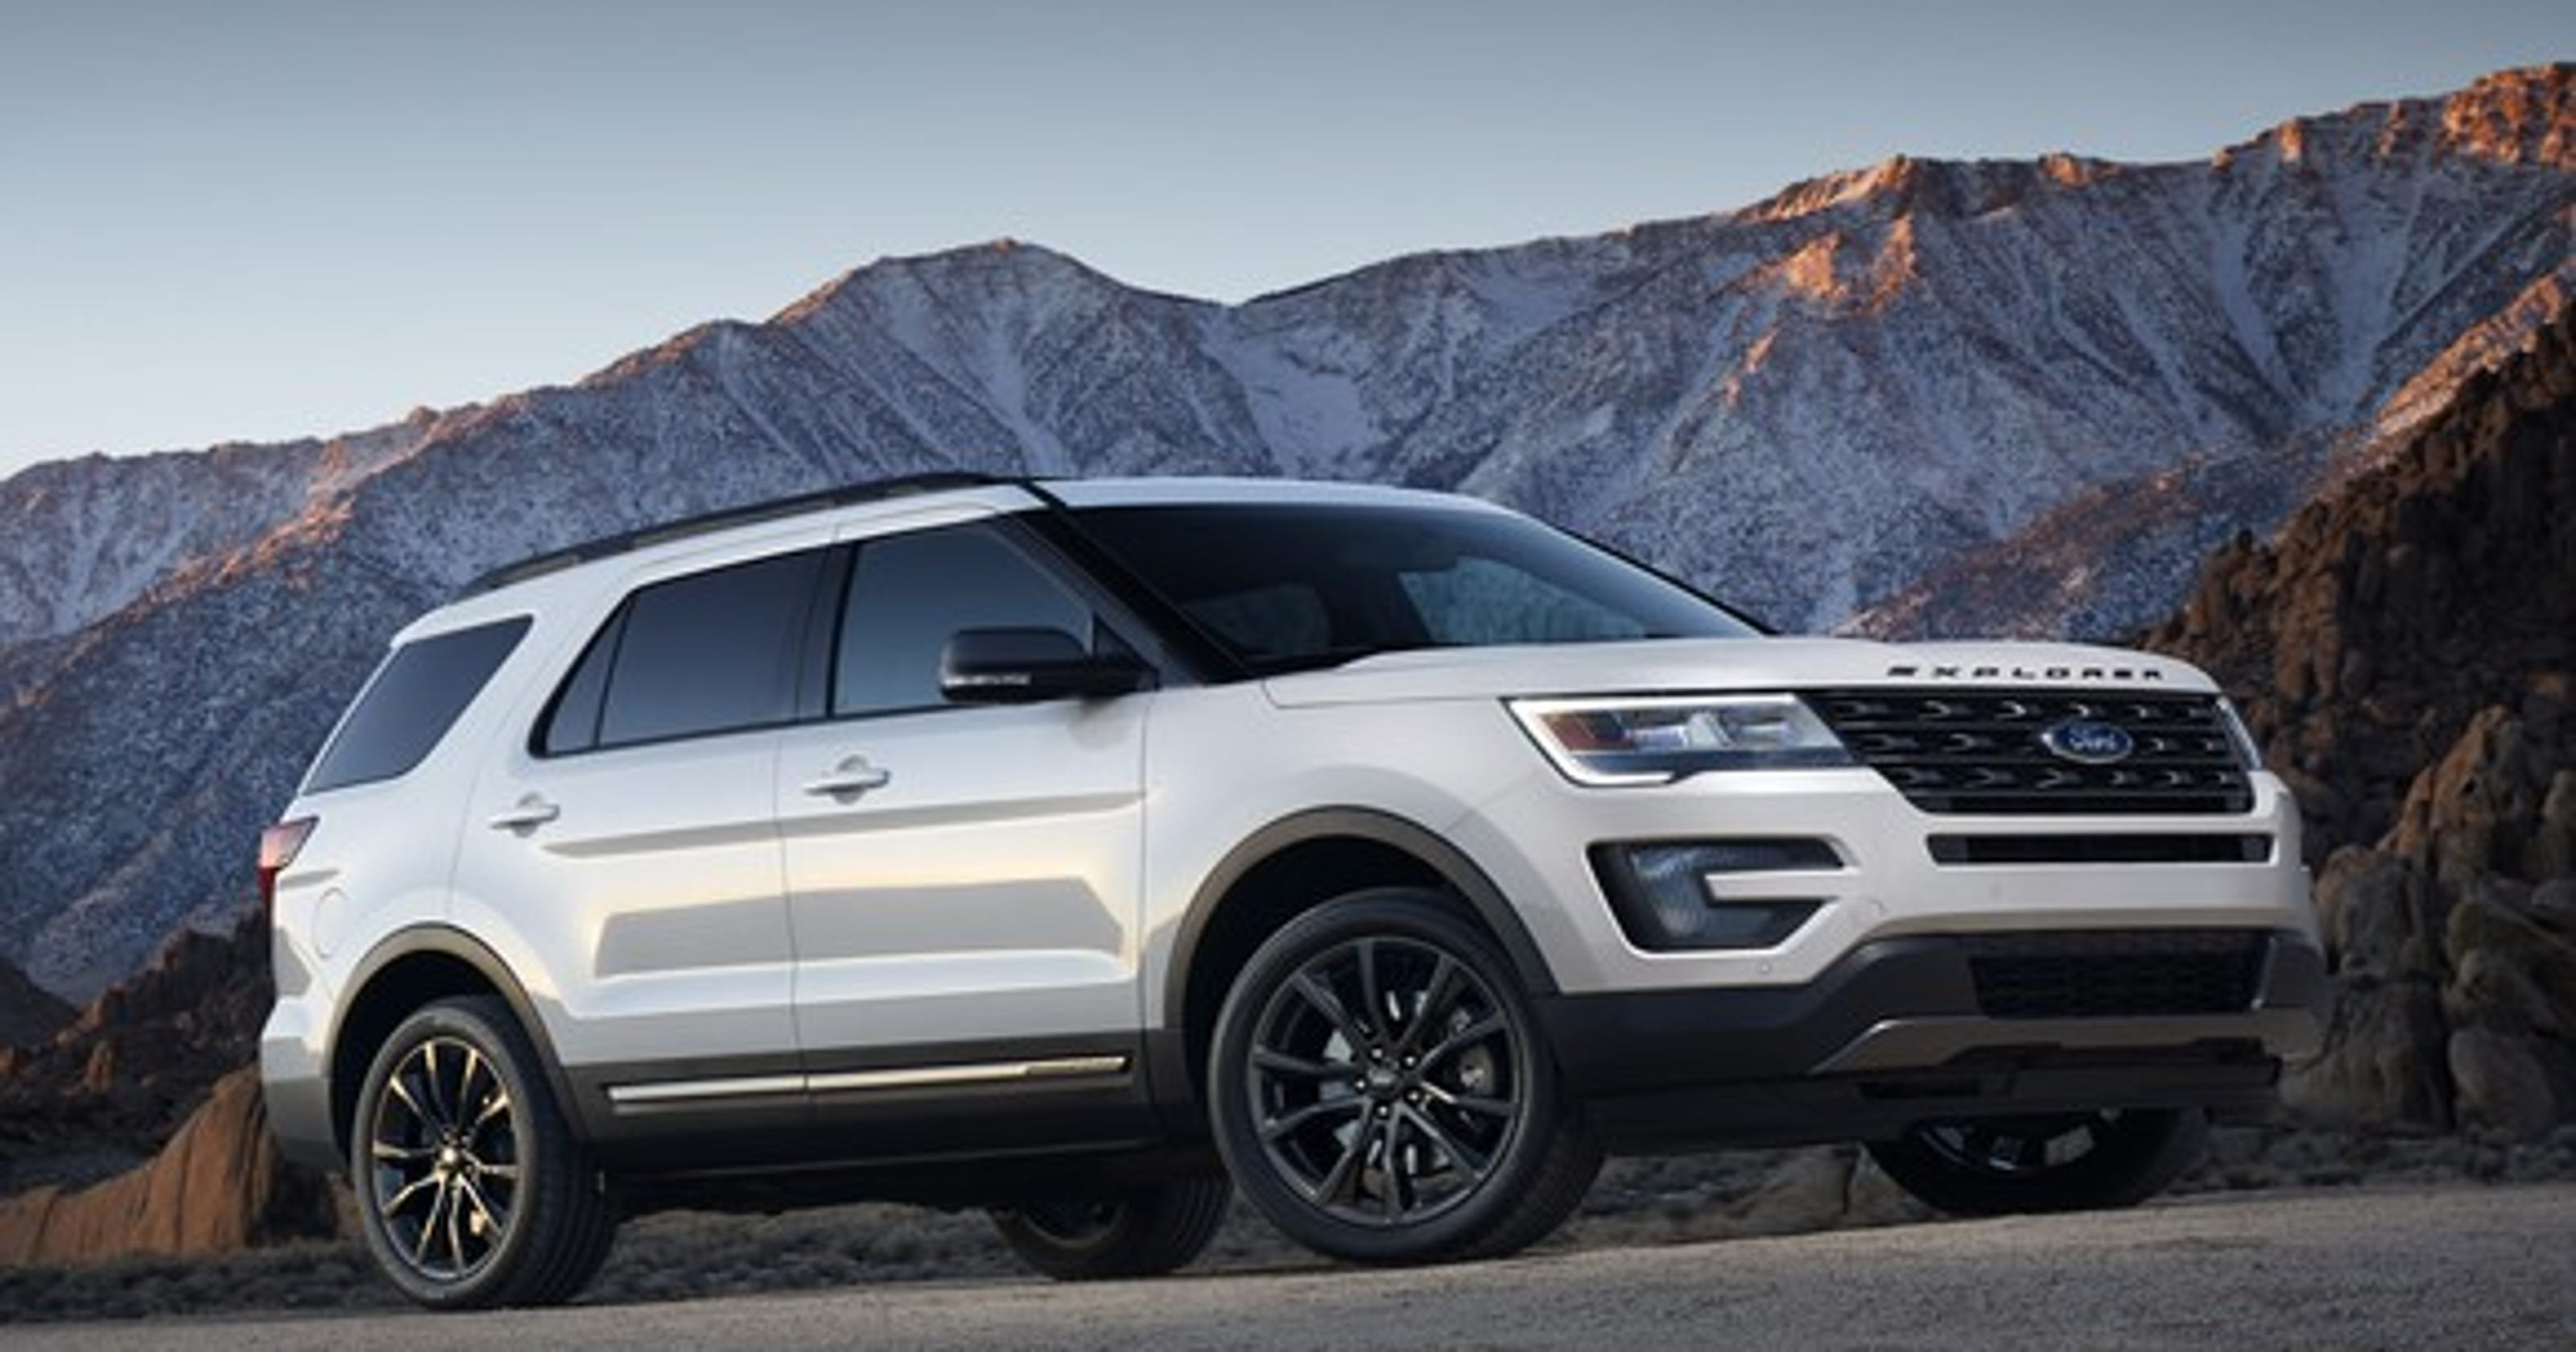 Is the ford explorer suv making people sick